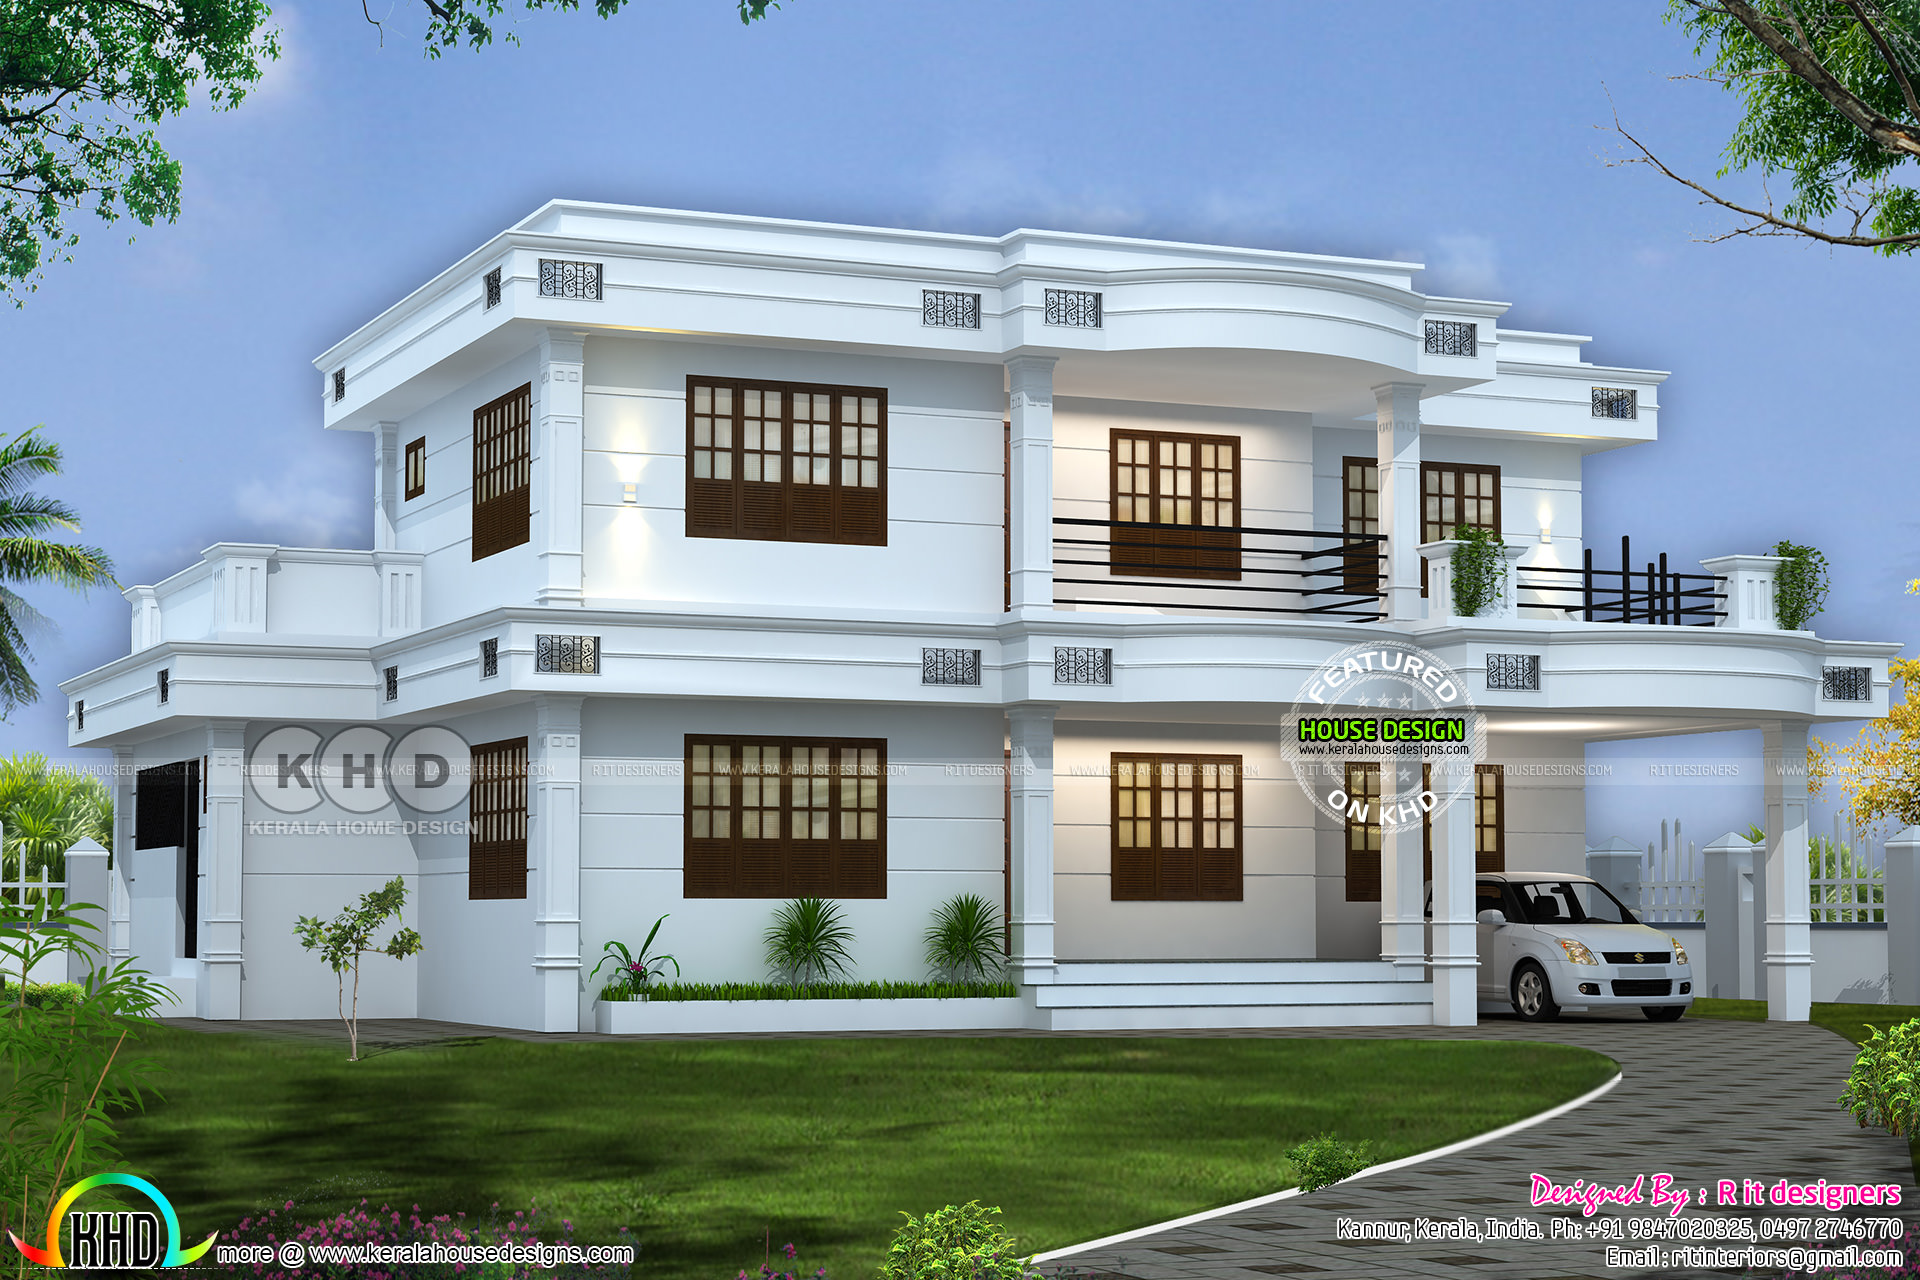 Pin By Joseph C D On Noah Builders Flat Roof House Designs Simple House Design New Home Designs